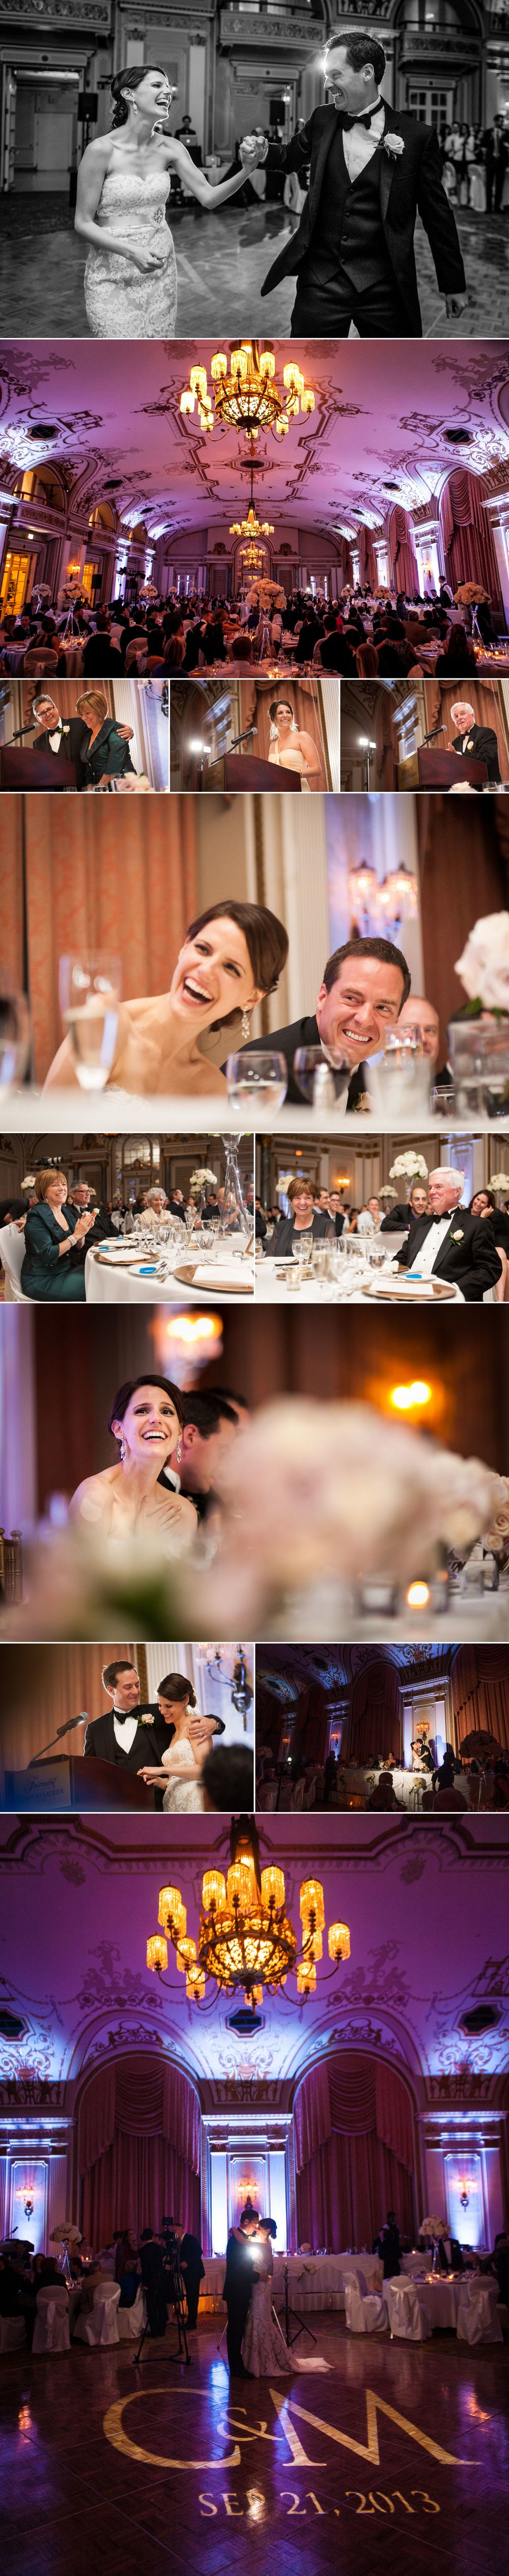 Wedding reception photos at le chateau laurier